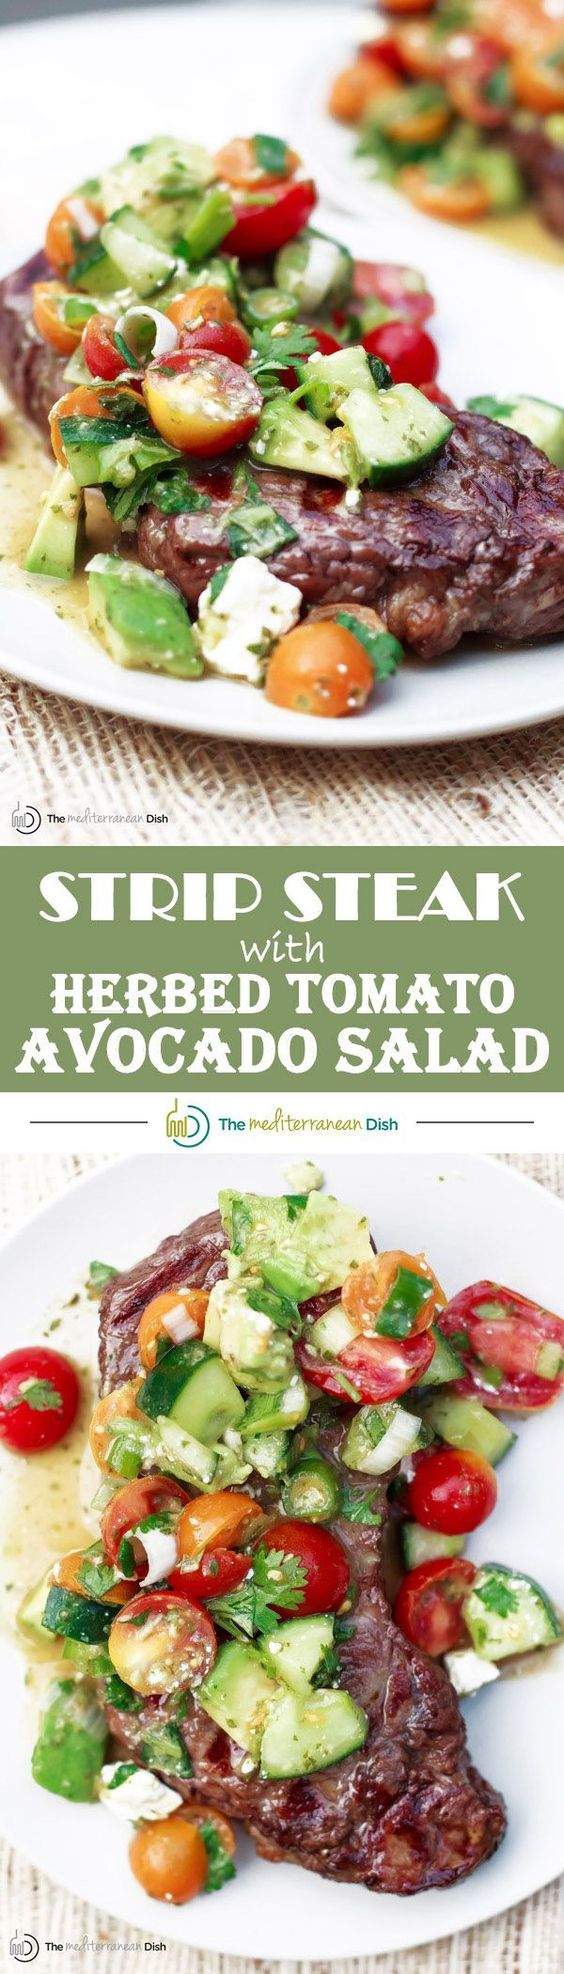 Grilled Strip Steak with Herbed Tomato Avocado Salad | The ...